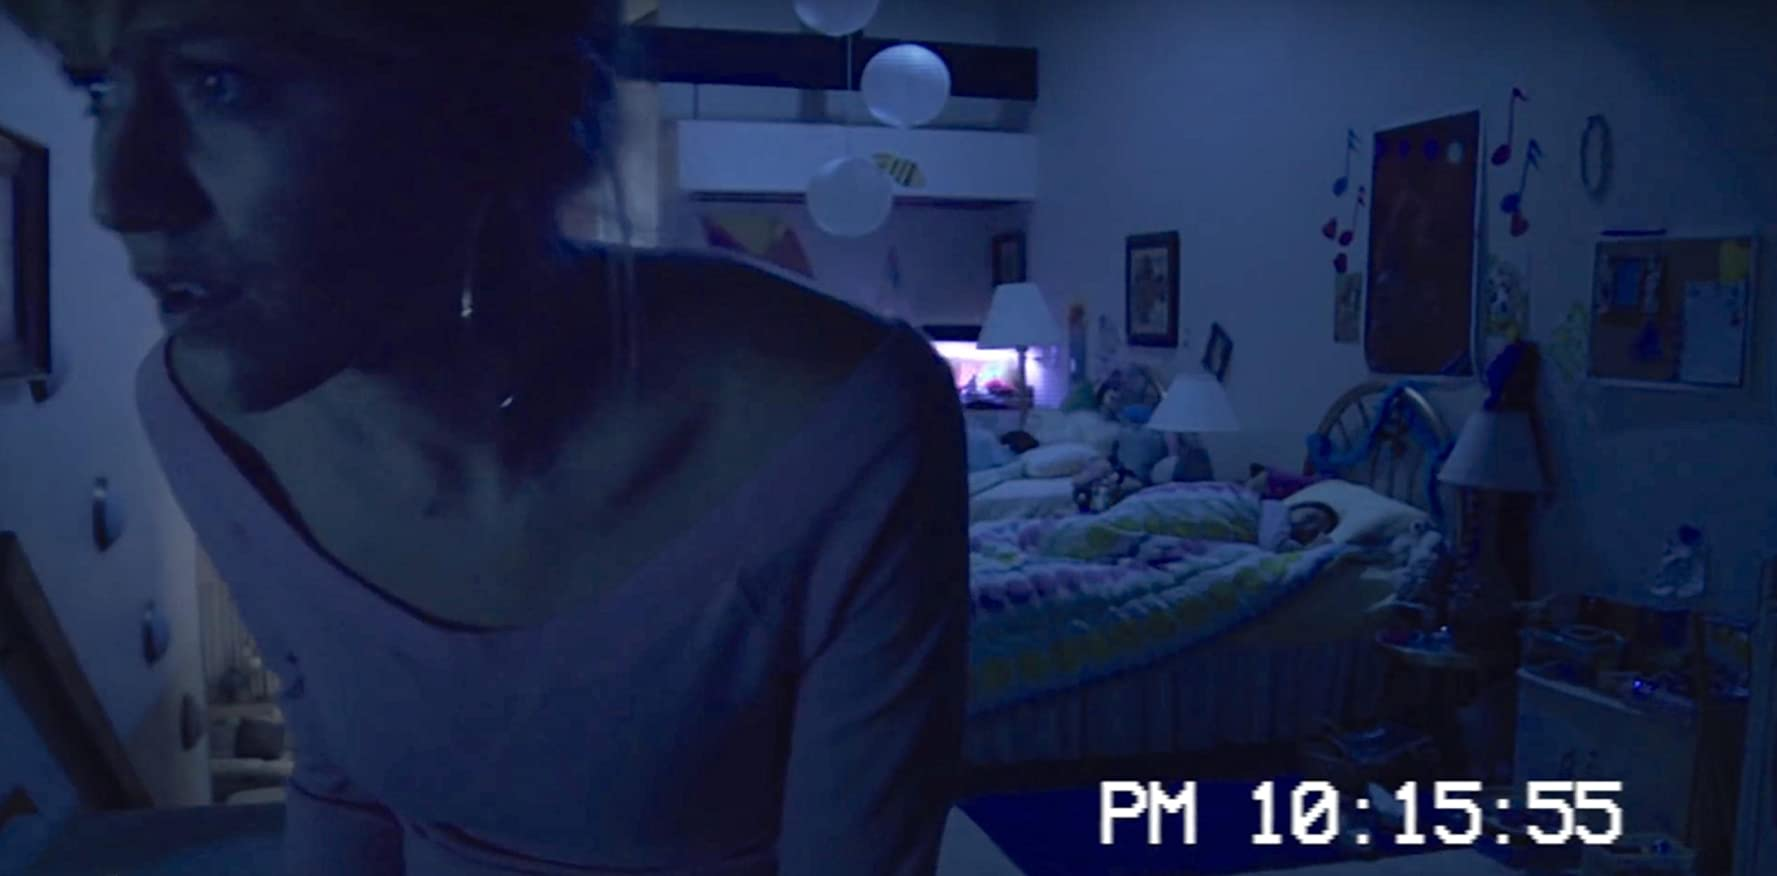 review paranormal activity 3 kevinfoyle